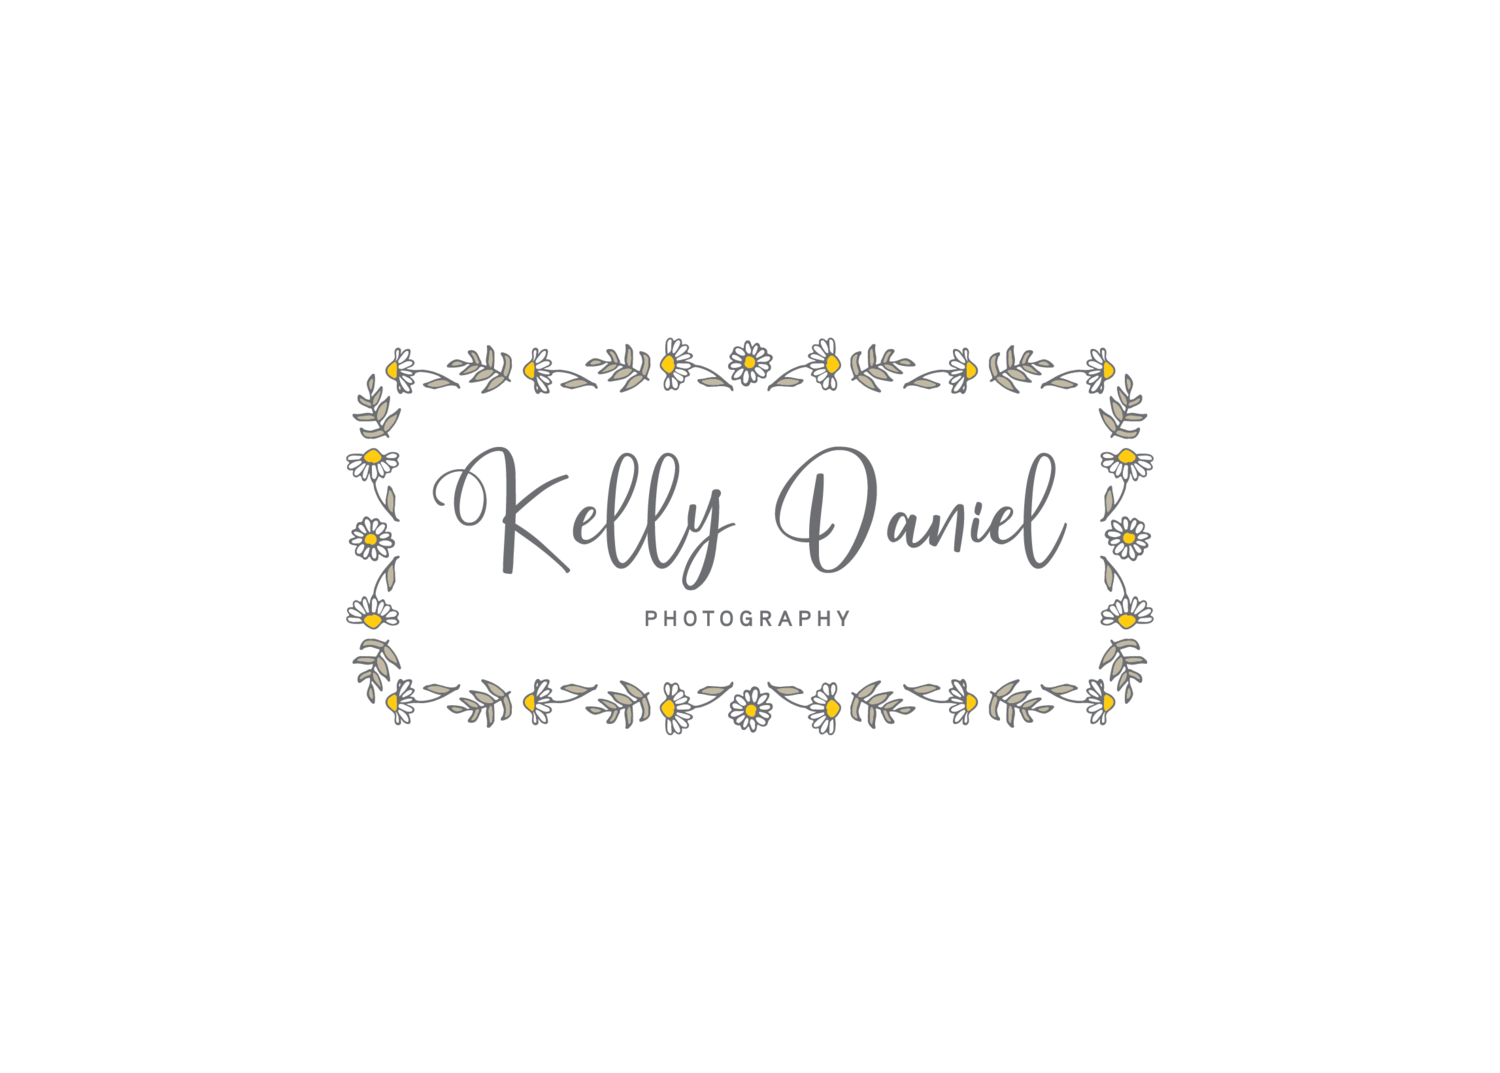 Kelly Daniel Photography / Newborn, Family and Wedding photographer near Cardiff